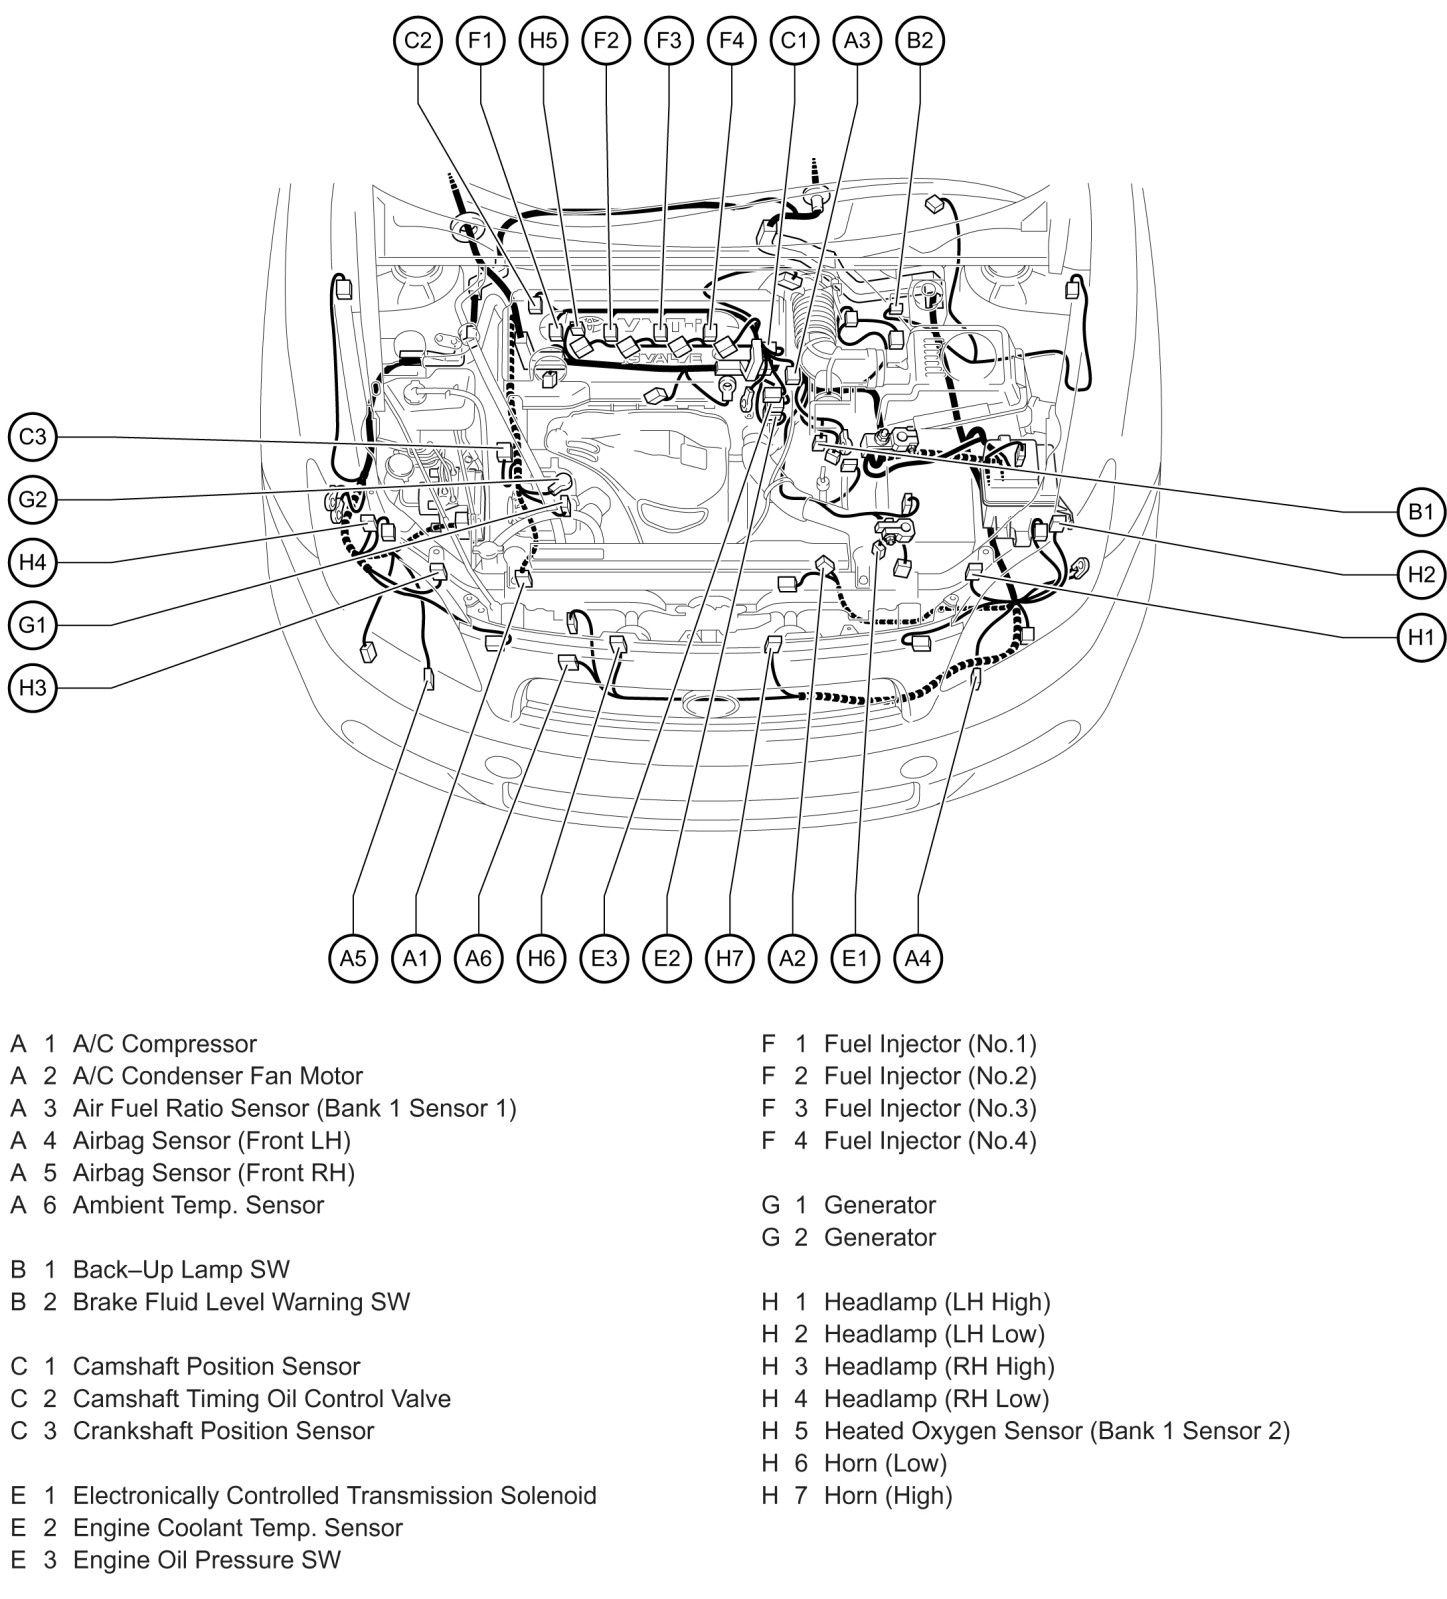 2005 Scion Tc Ac Wiring Diagram - Wiring Diagram Data on ford expedition ignition wiring diagram, chevy silverado ignition wiring diagram, toyota vios ignition wiring diagram, ford pinto ignition wiring diagram, ford falcon ignition wiring diagram, hyundai santa fe ignition wiring diagram, ford f250 ignition wiring diagram, ford explorer ignition wiring diagram, toyota pickup ignition wiring diagram, ford festiva ignition wiring diagram, pontiac montana ignition wiring diagram, volvo v70 ignition wiring diagram, jeep wrangler ignition wiring diagram, chevy malibu ignition wiring diagram, ford f-150 ignition wiring diagram, suzuki forenza ignition wiring diagram, jeep patriot ignition wiring diagram, ford mustang ignition wiring diagram, jeep commander ignition wiring diagram, jeep grand cherokee ignition wiring diagram,